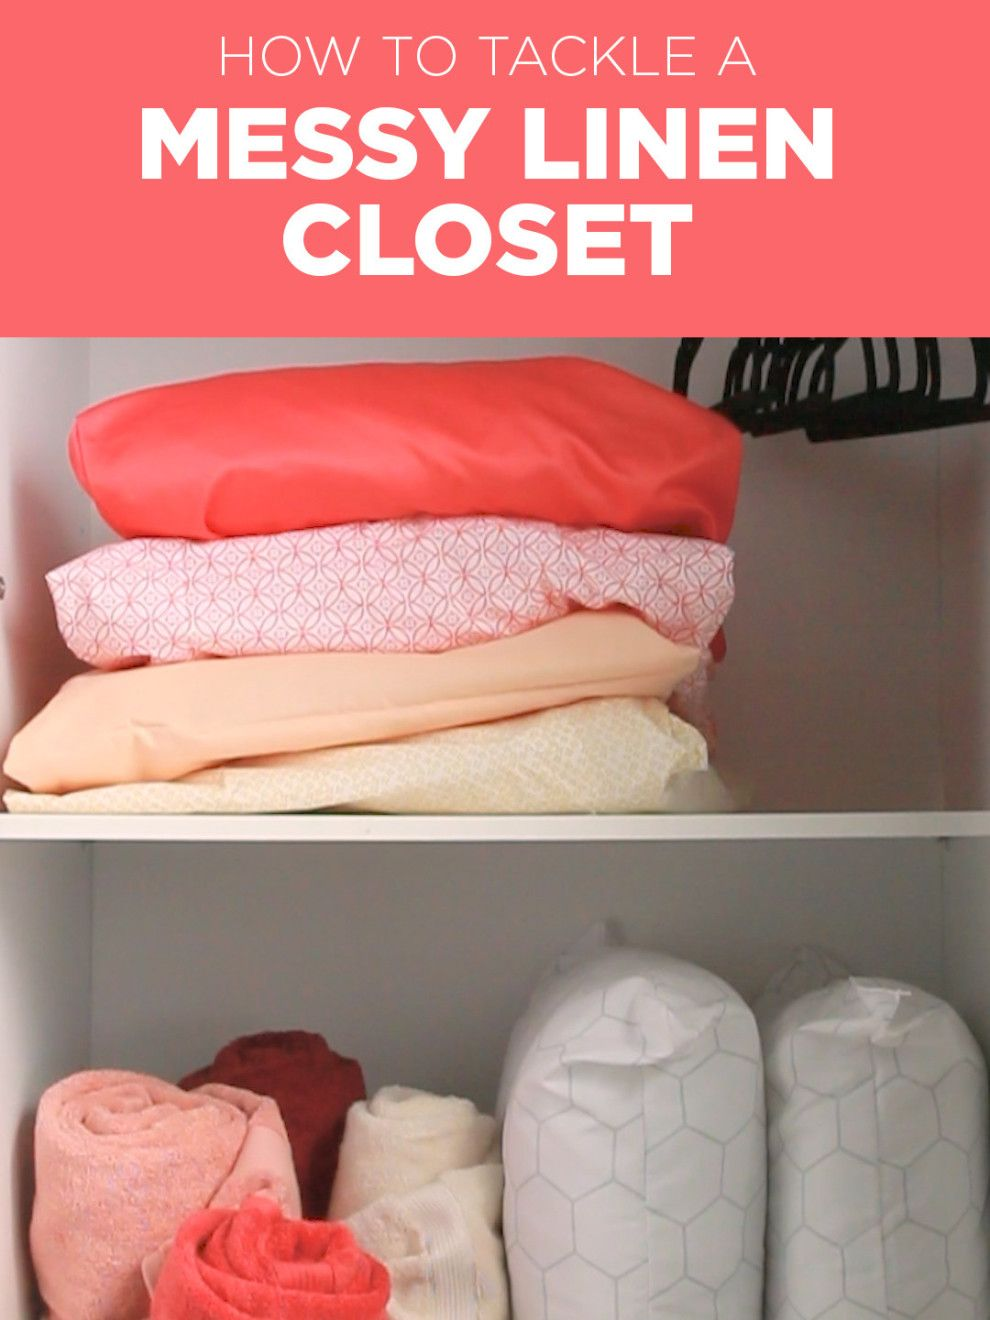 Organize A Messy Linen Closet With These Easy Hacks